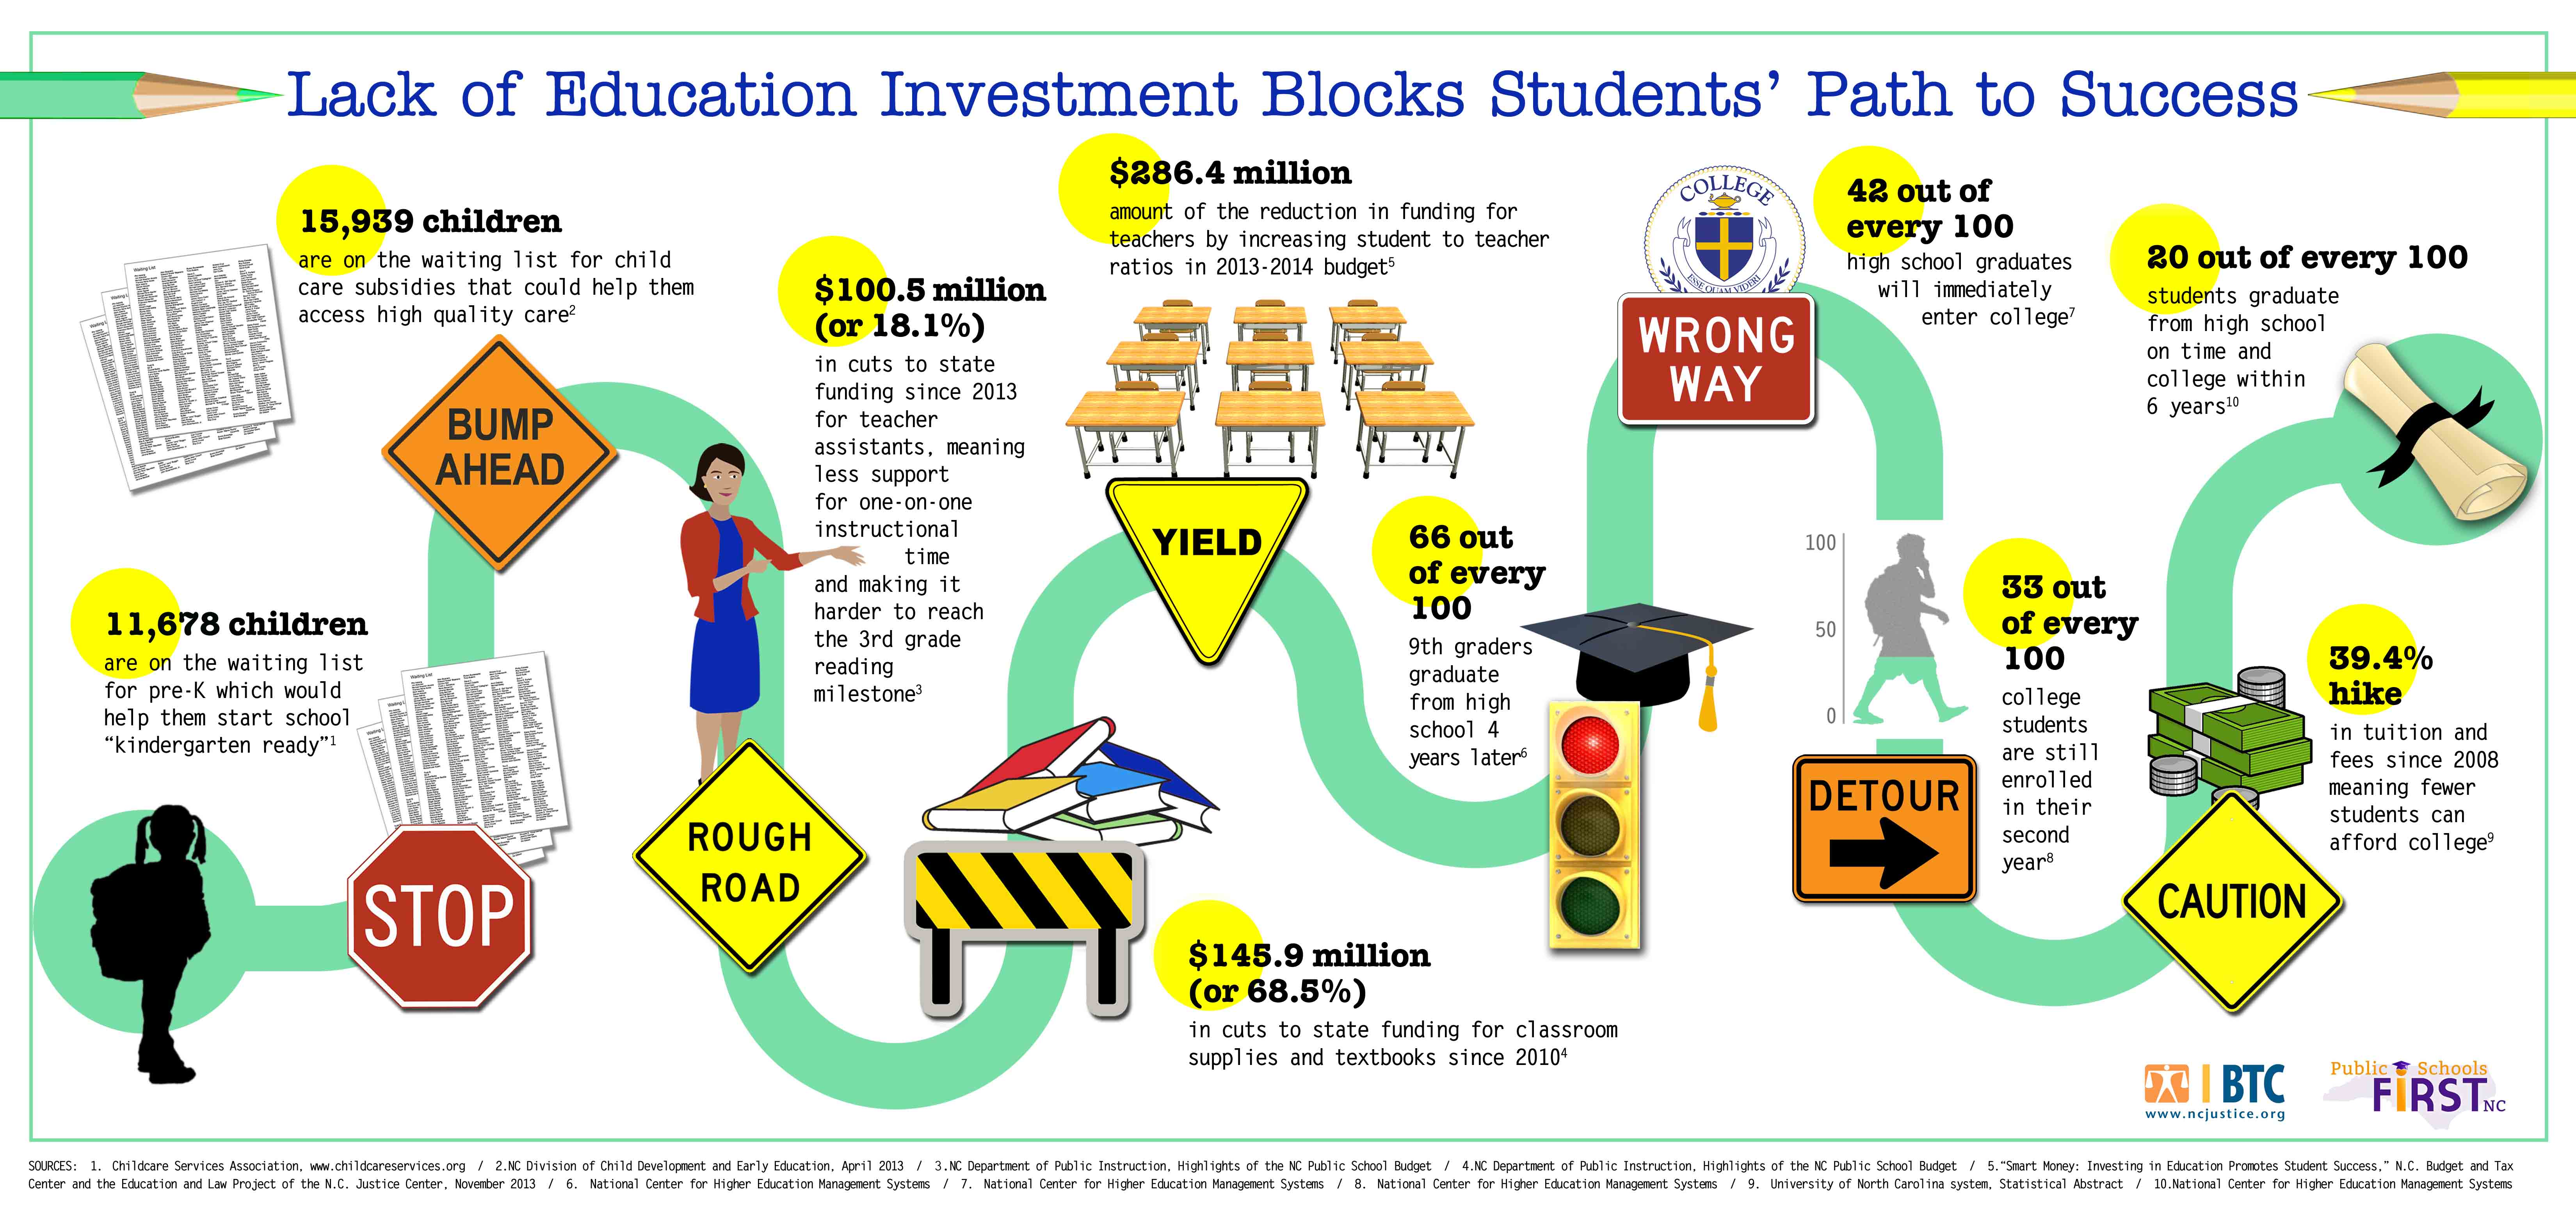 infographic  lack of education investment blocks students u2019 path to success  u2013 public schools first nc